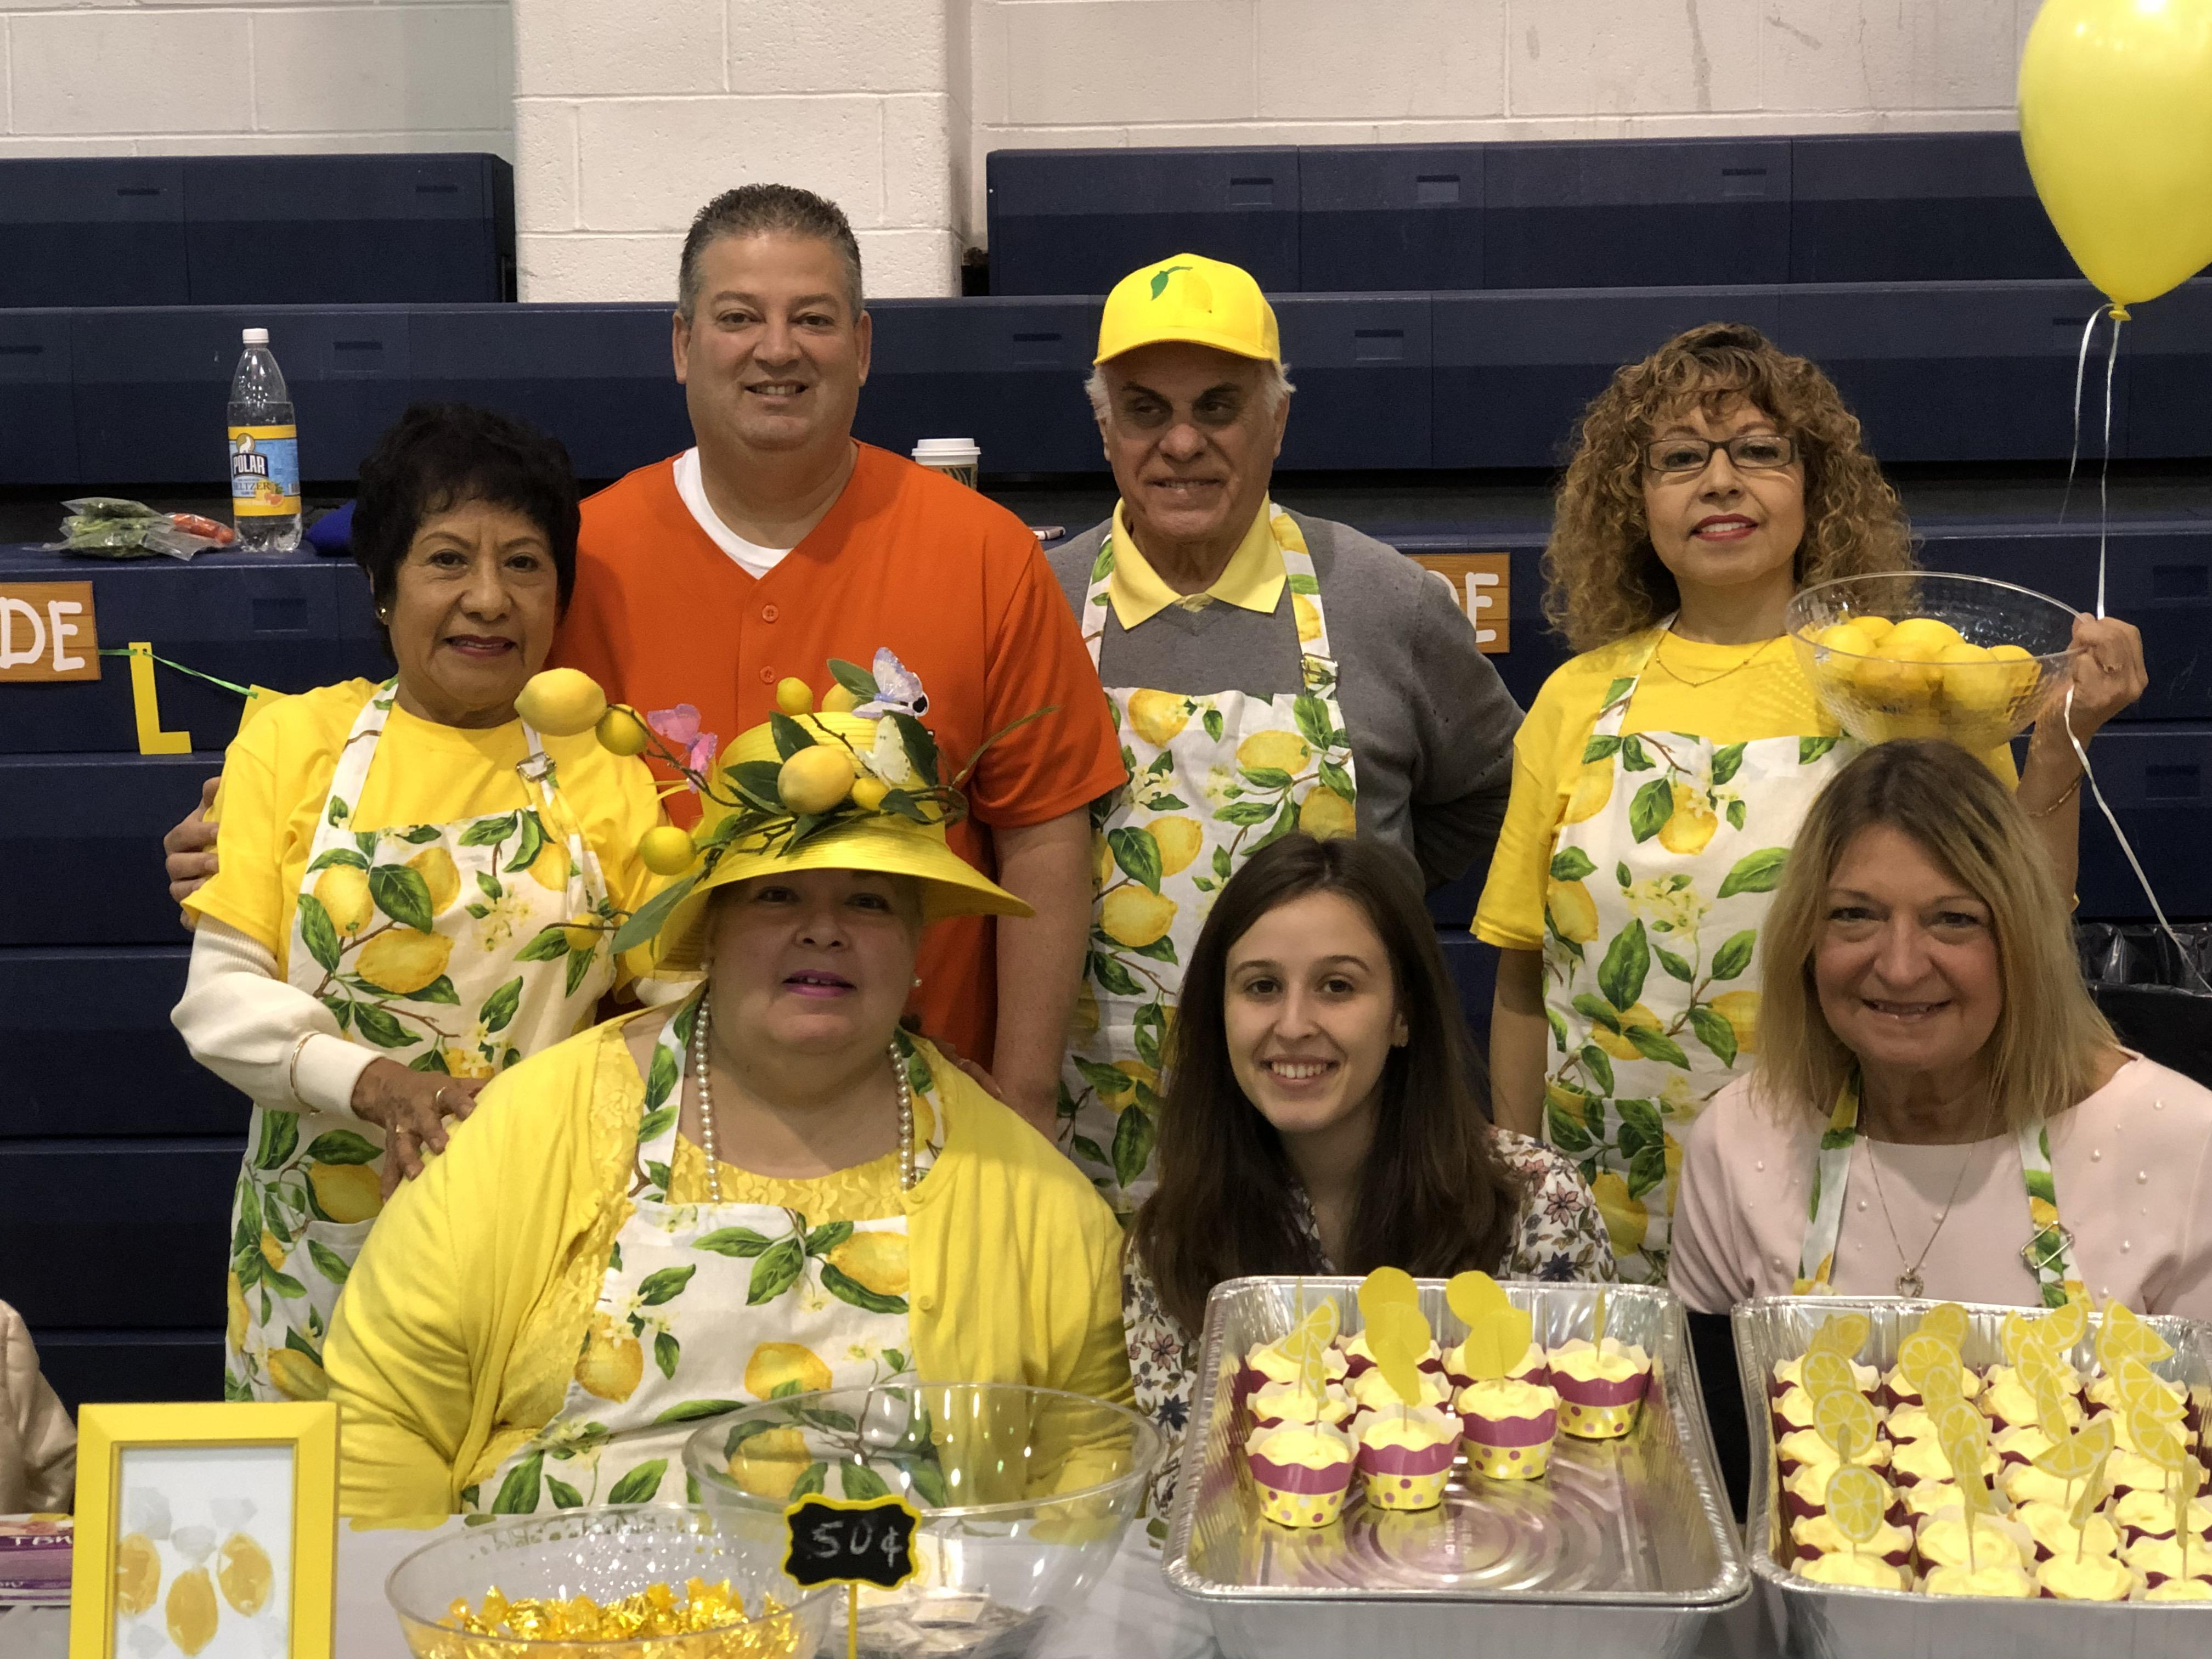 Mr. Rivera with Washington Staff at the table with fresh lemonade and lemon cupcakes